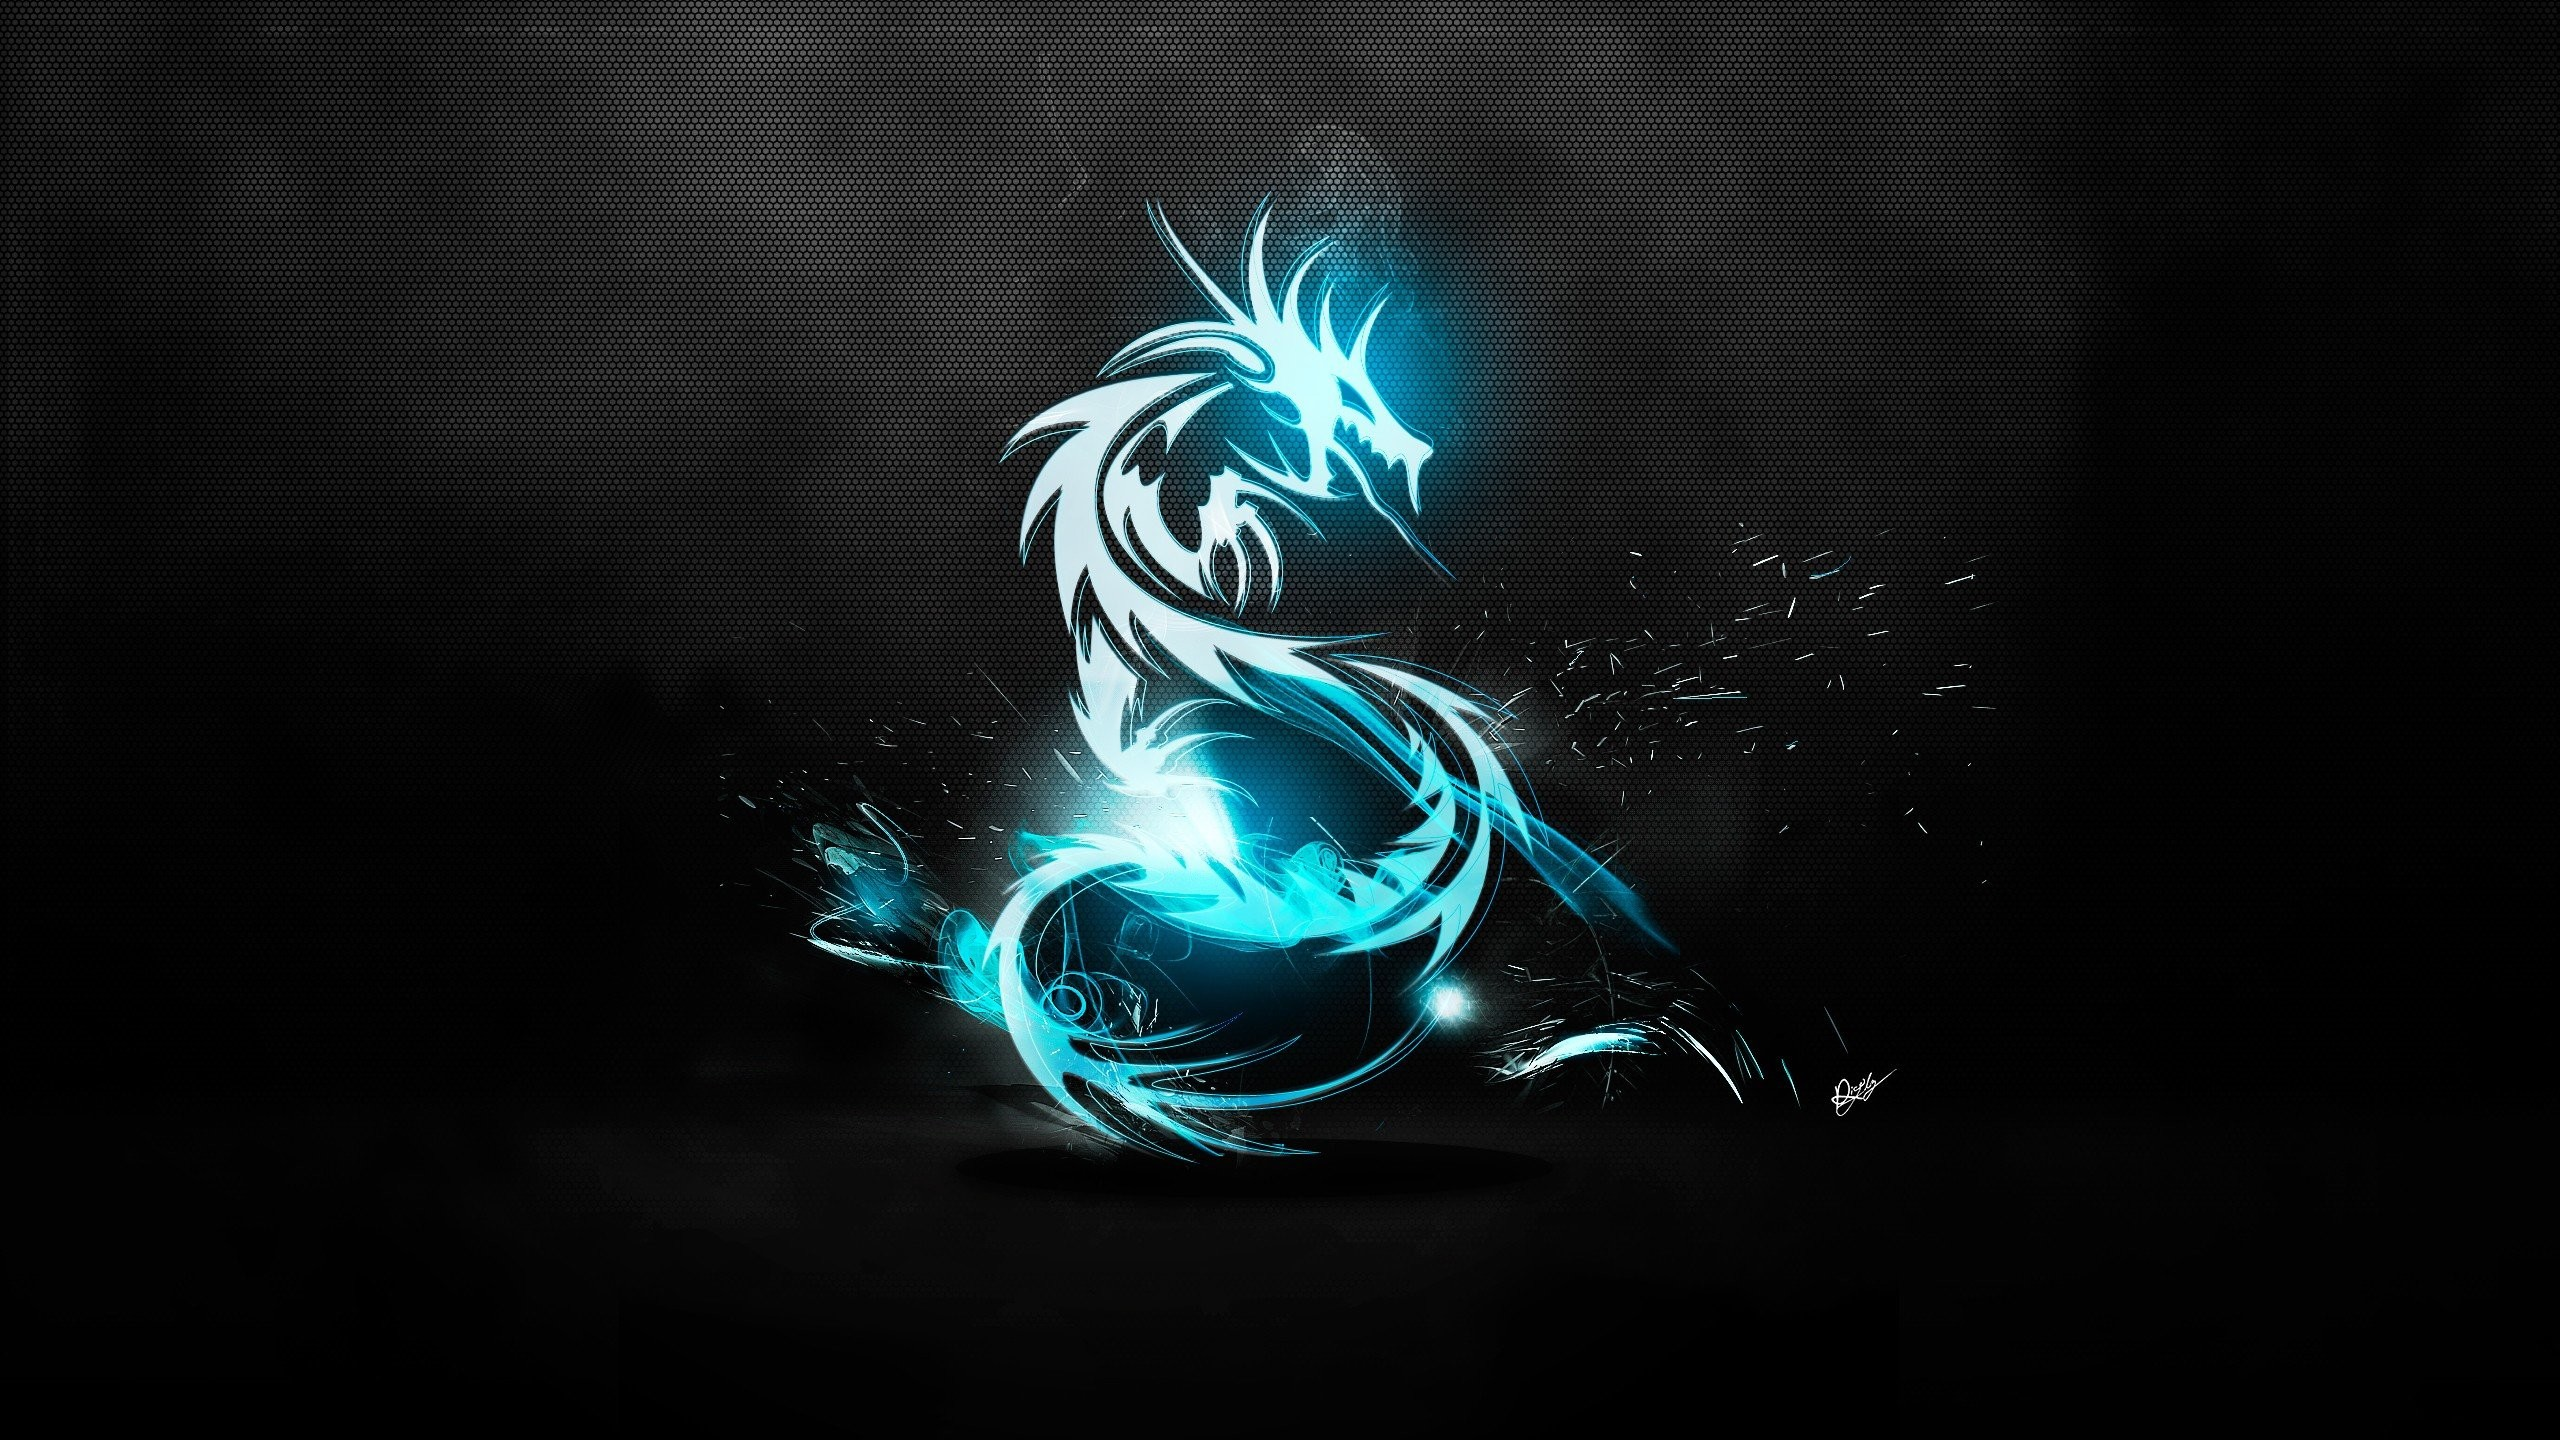 Wallpaper Sea Waves · Space Galaxy Wallpapers. Space Galaxy  Wallpapers. Space Galaxy Wallpapers · Cool Blue Dragons Background